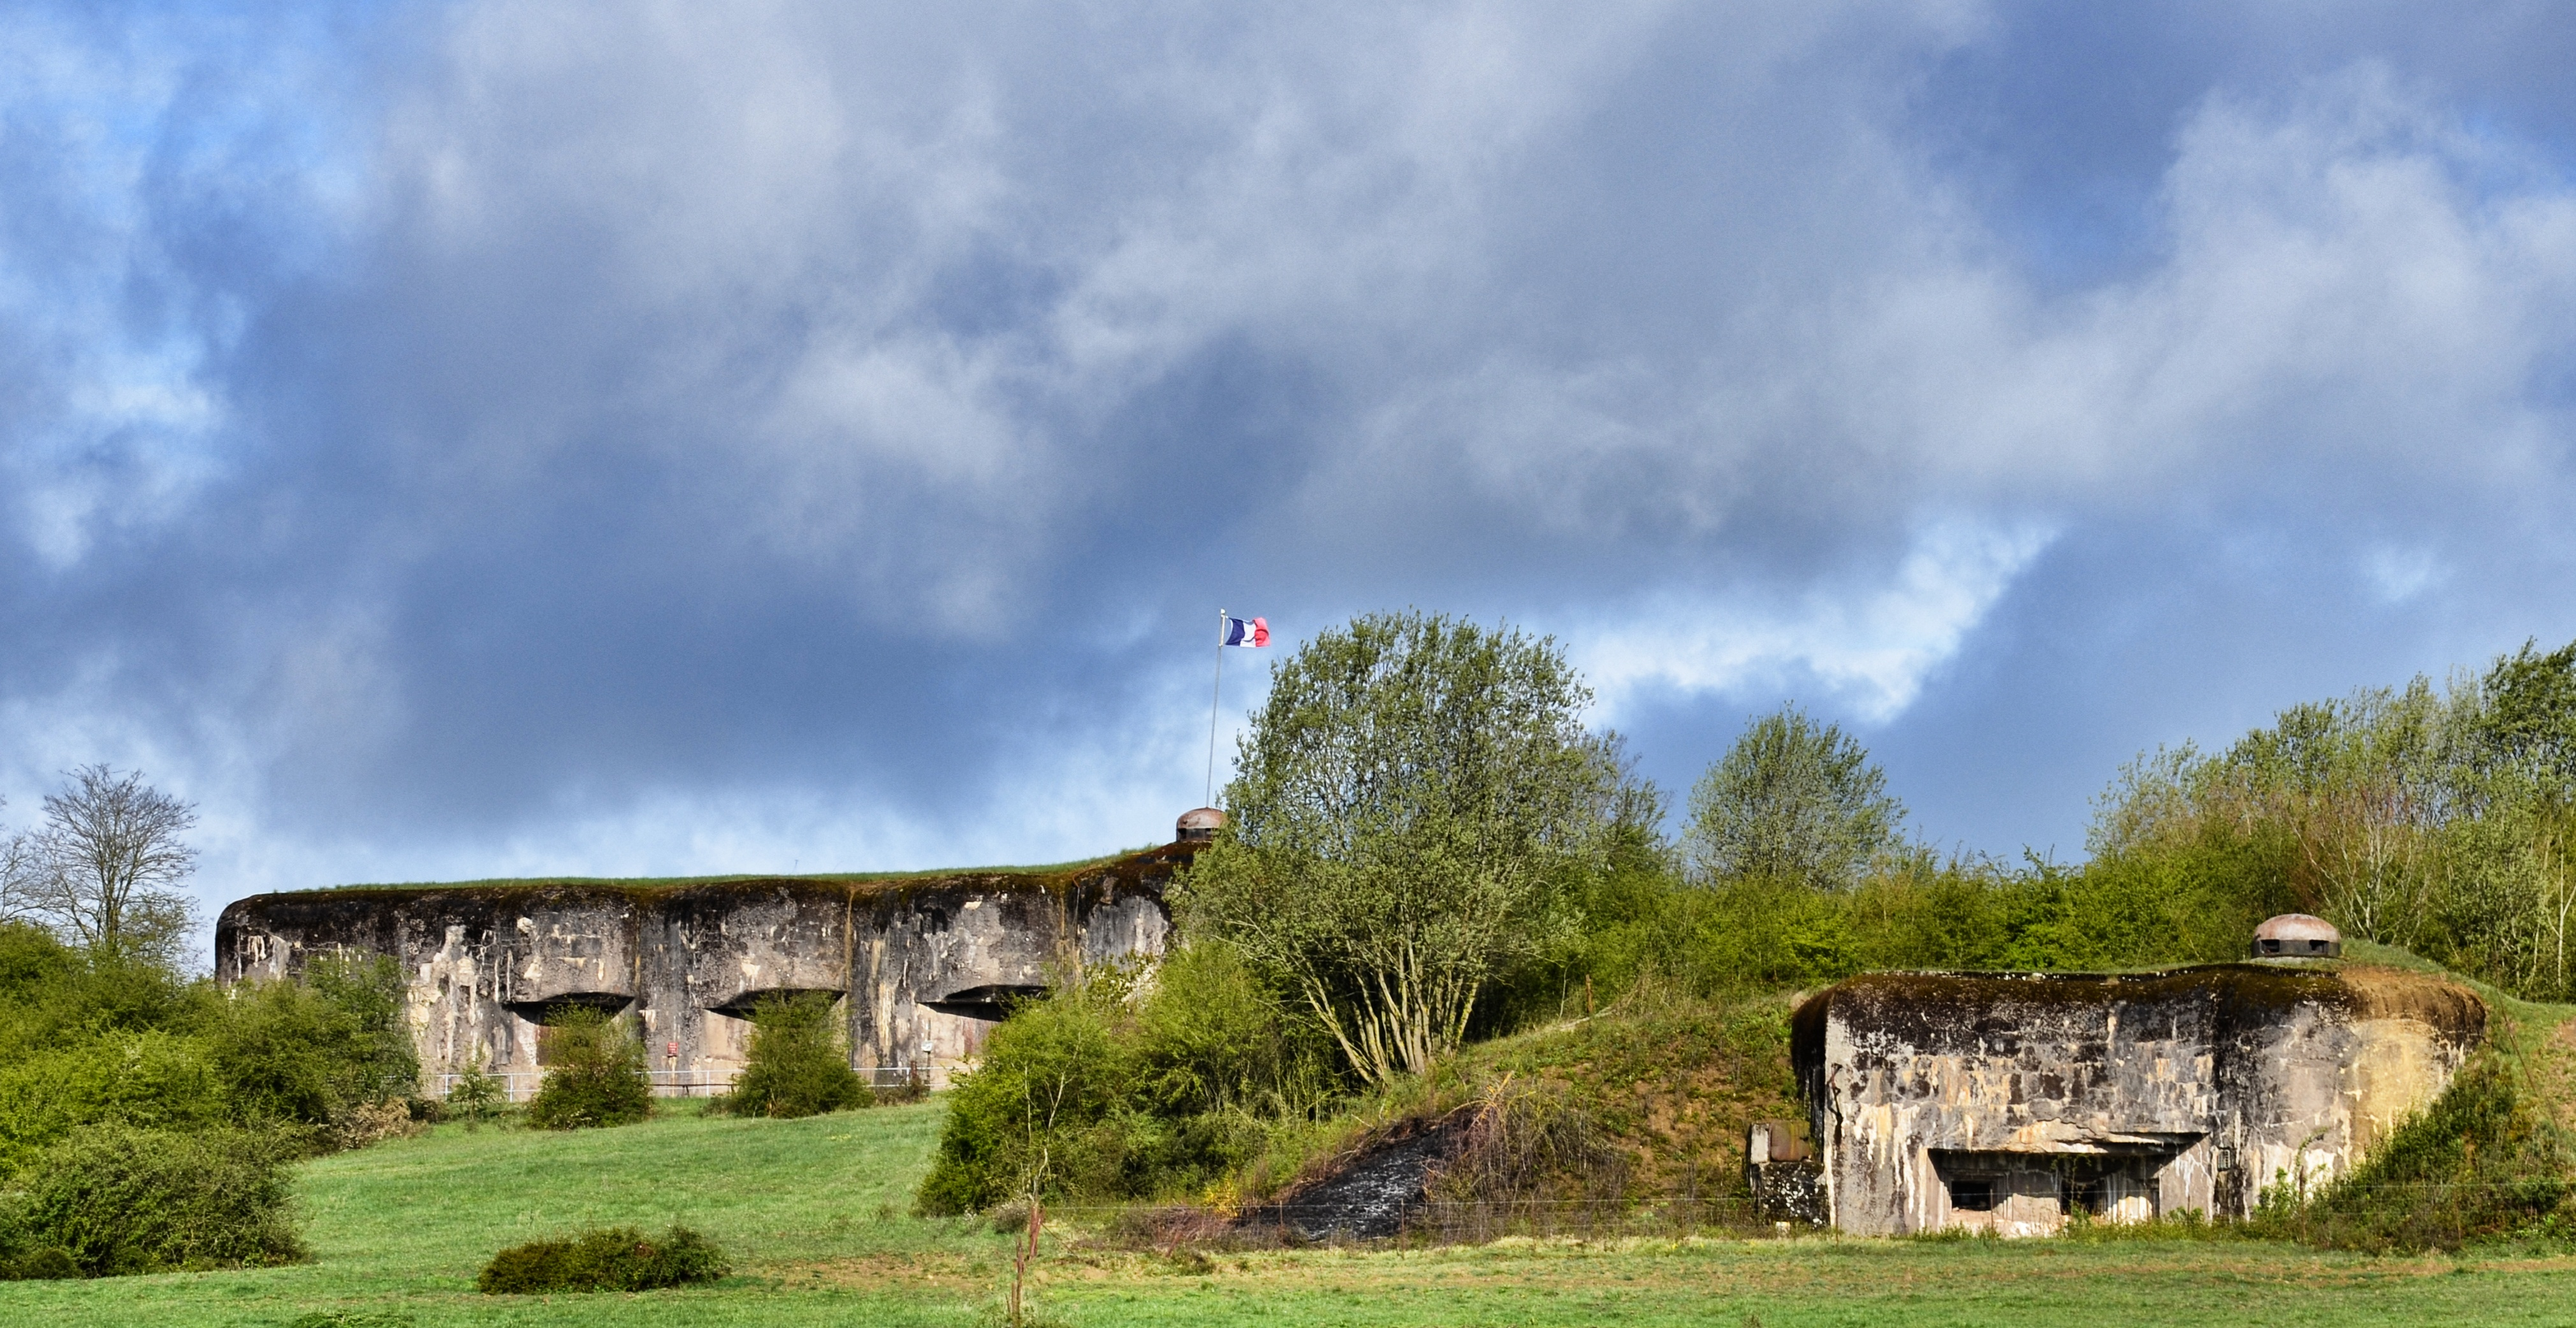 M Pictures of the maginot line